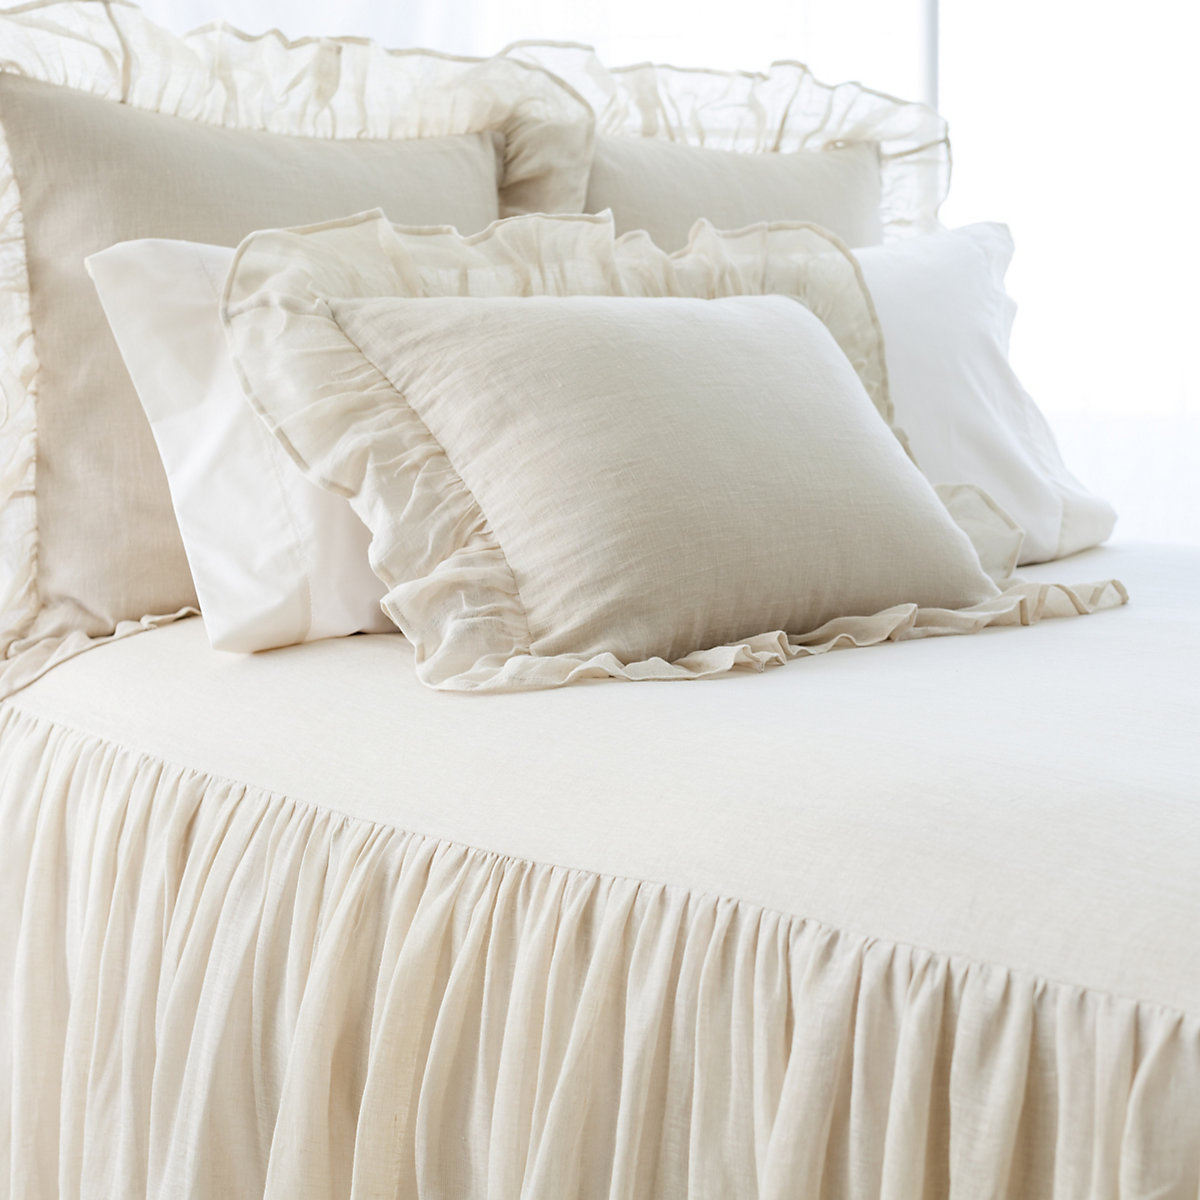 Bedspreads add warmth to your bedroom and offer a cozier night's sleep. Swap them out with the seasons or simply use them to add a new pattern or color to your room when the mood strikes. It's one of the easiest ways to add a little more softness (and style) to your life.